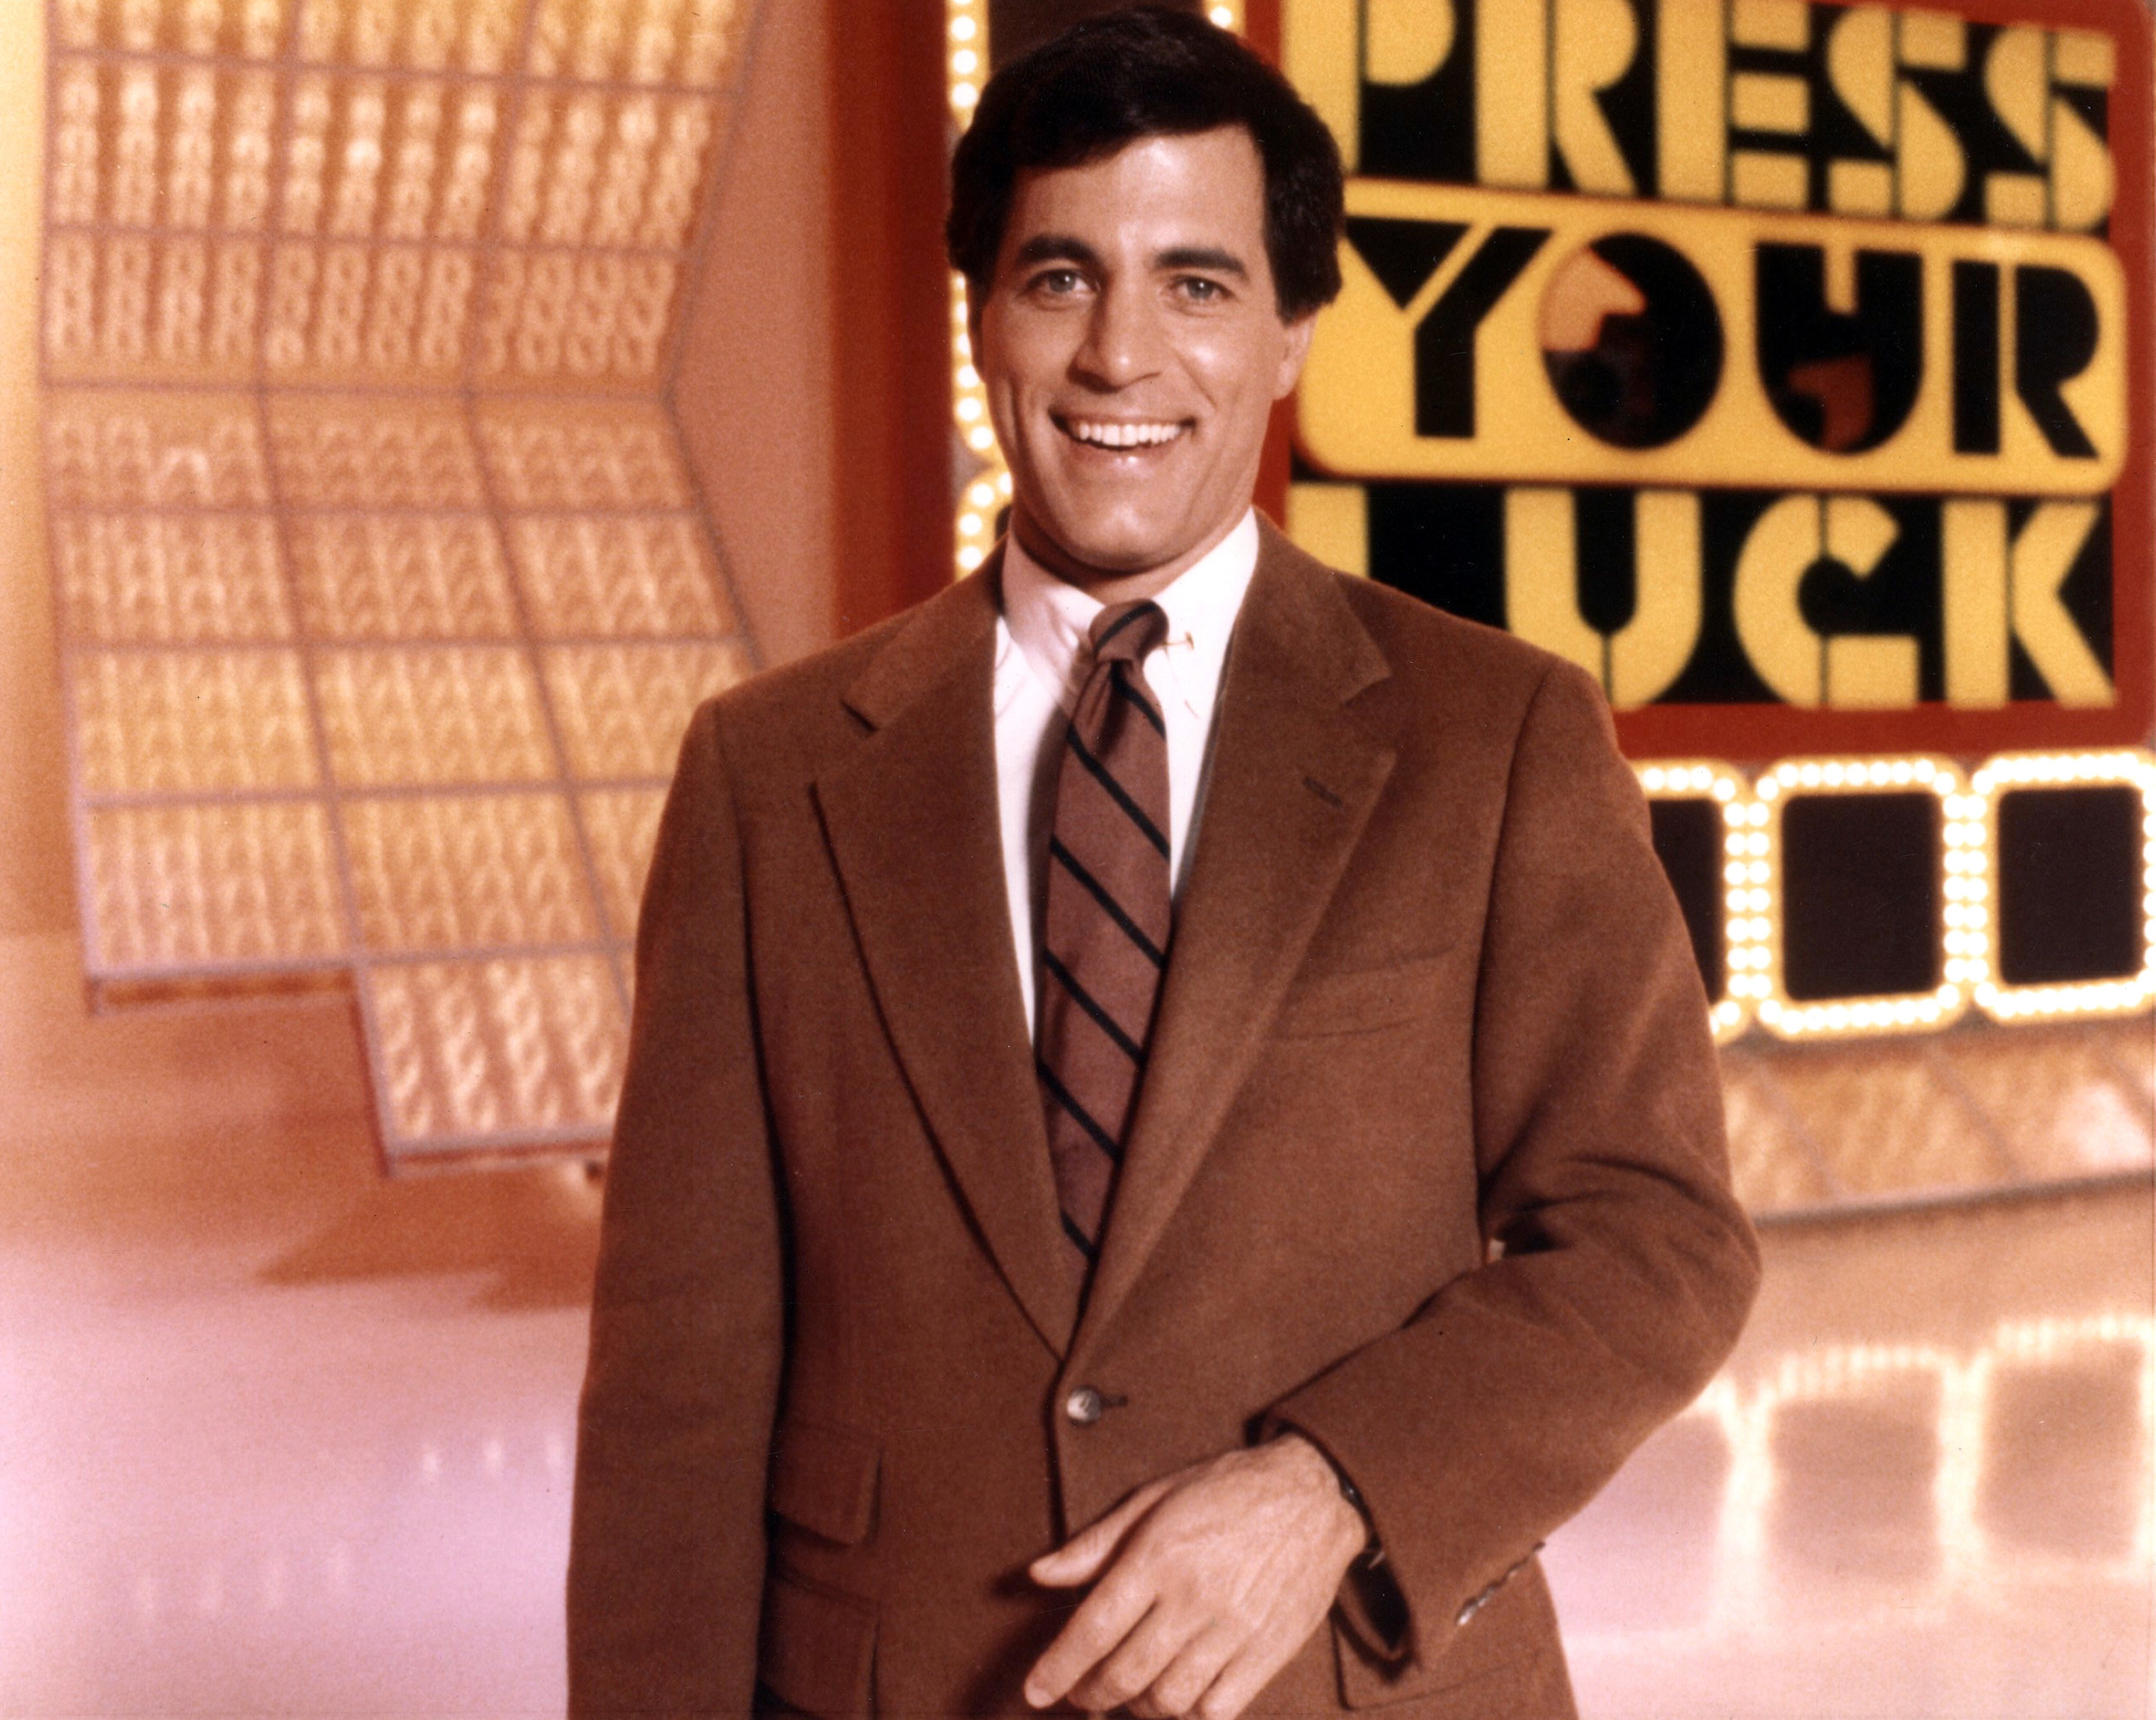 the host of press your luck